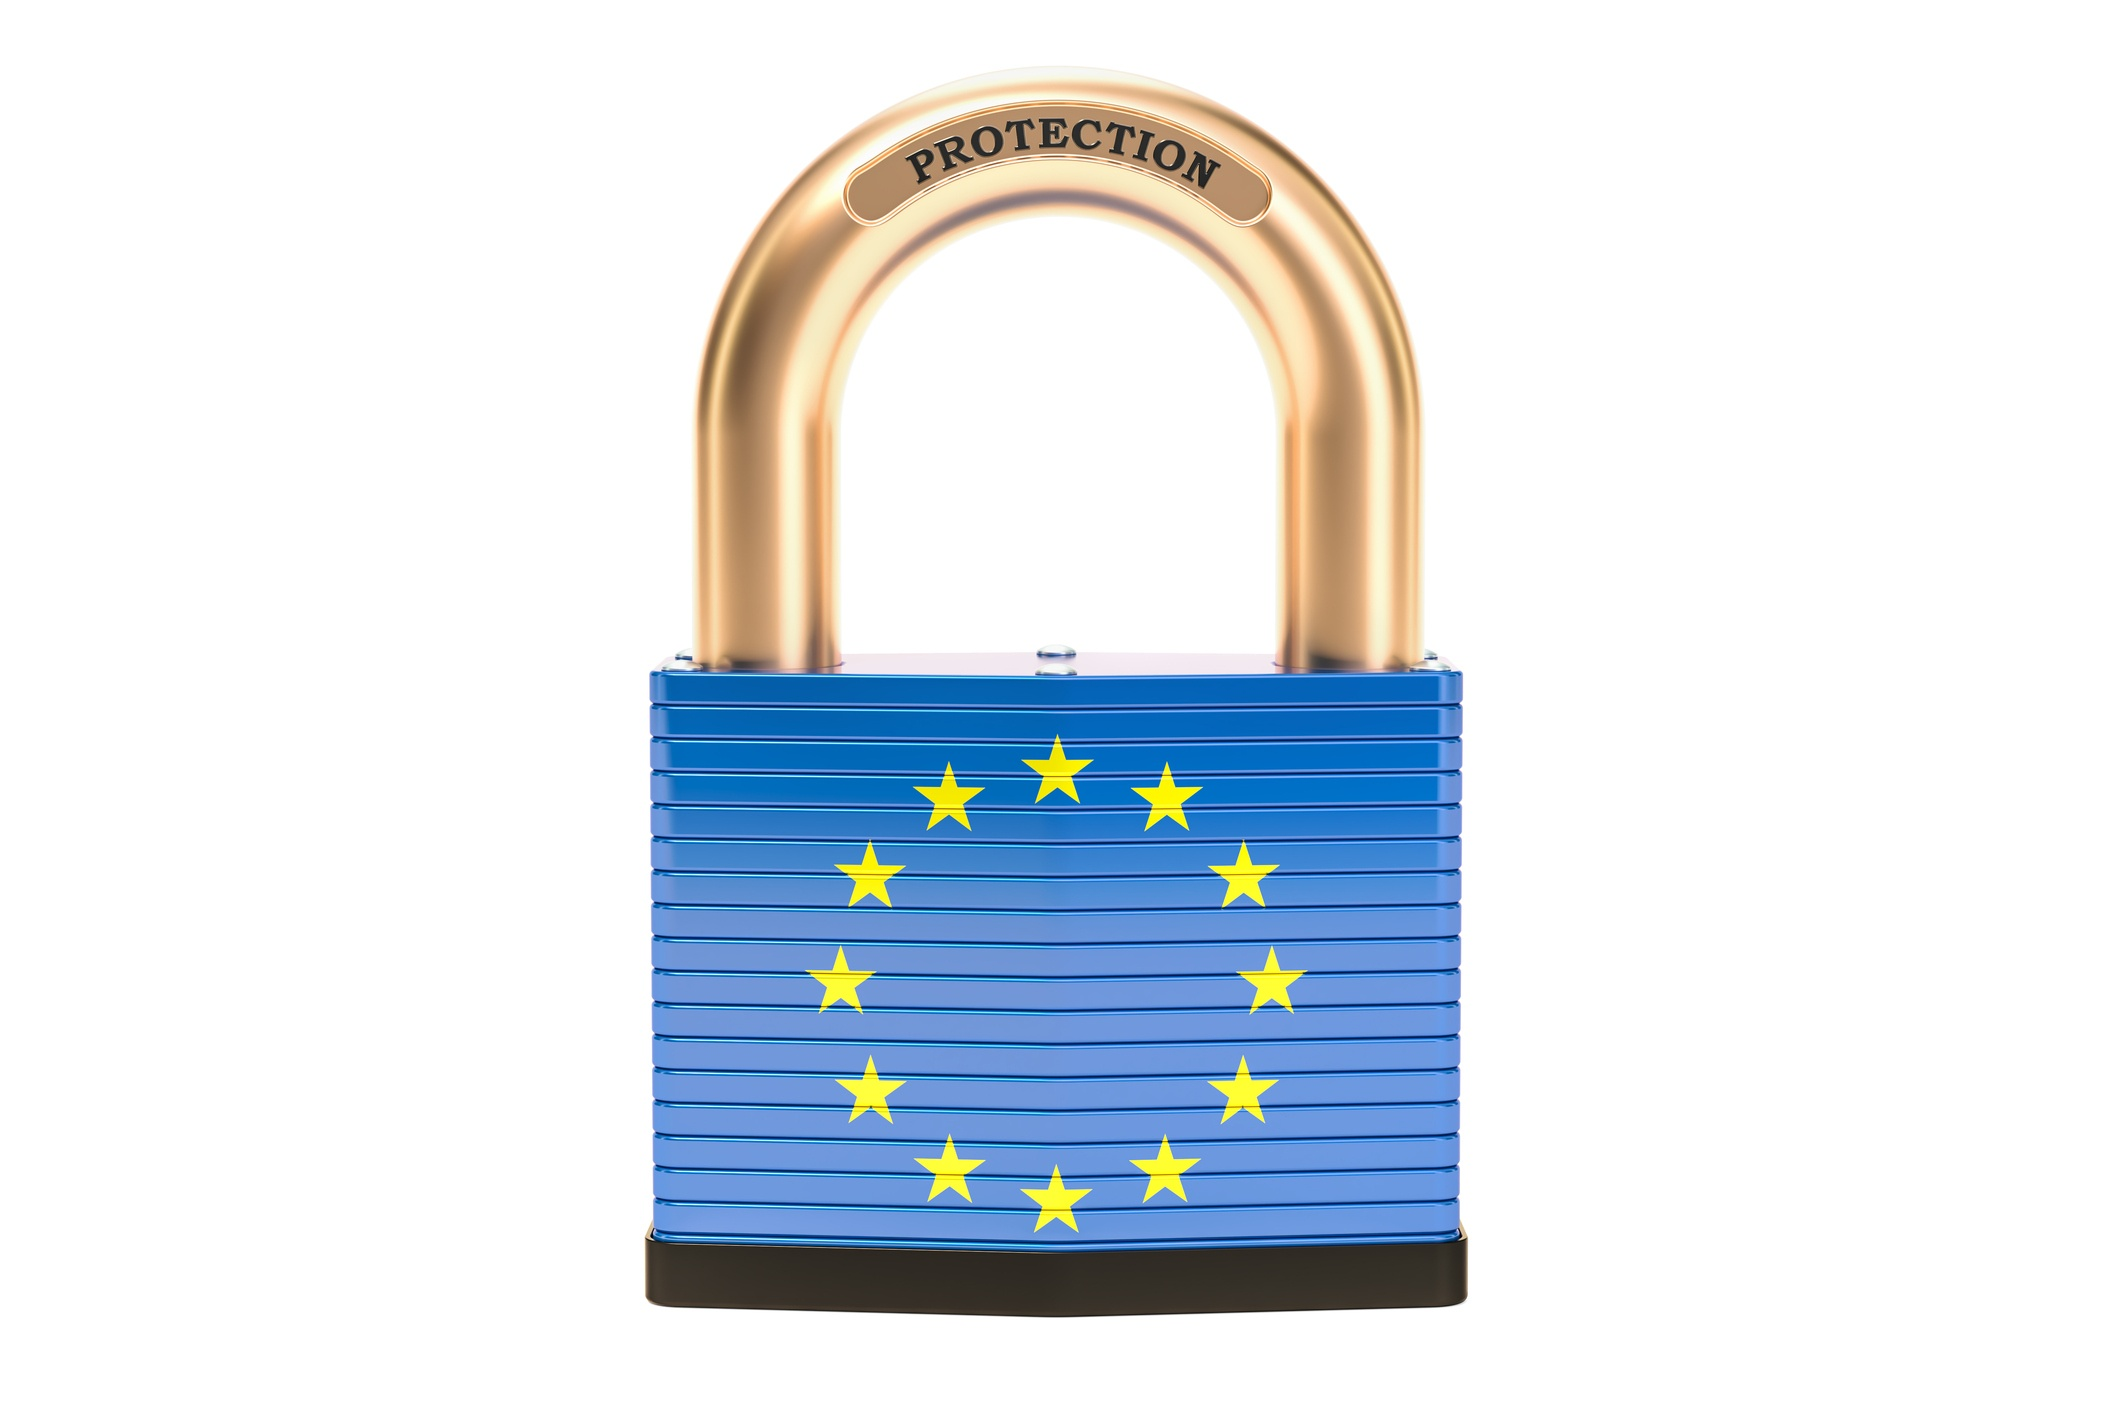 Protection-concept,-flag-of-the-EU-with-padlock.-3D-rendering-946296256_2125x1416